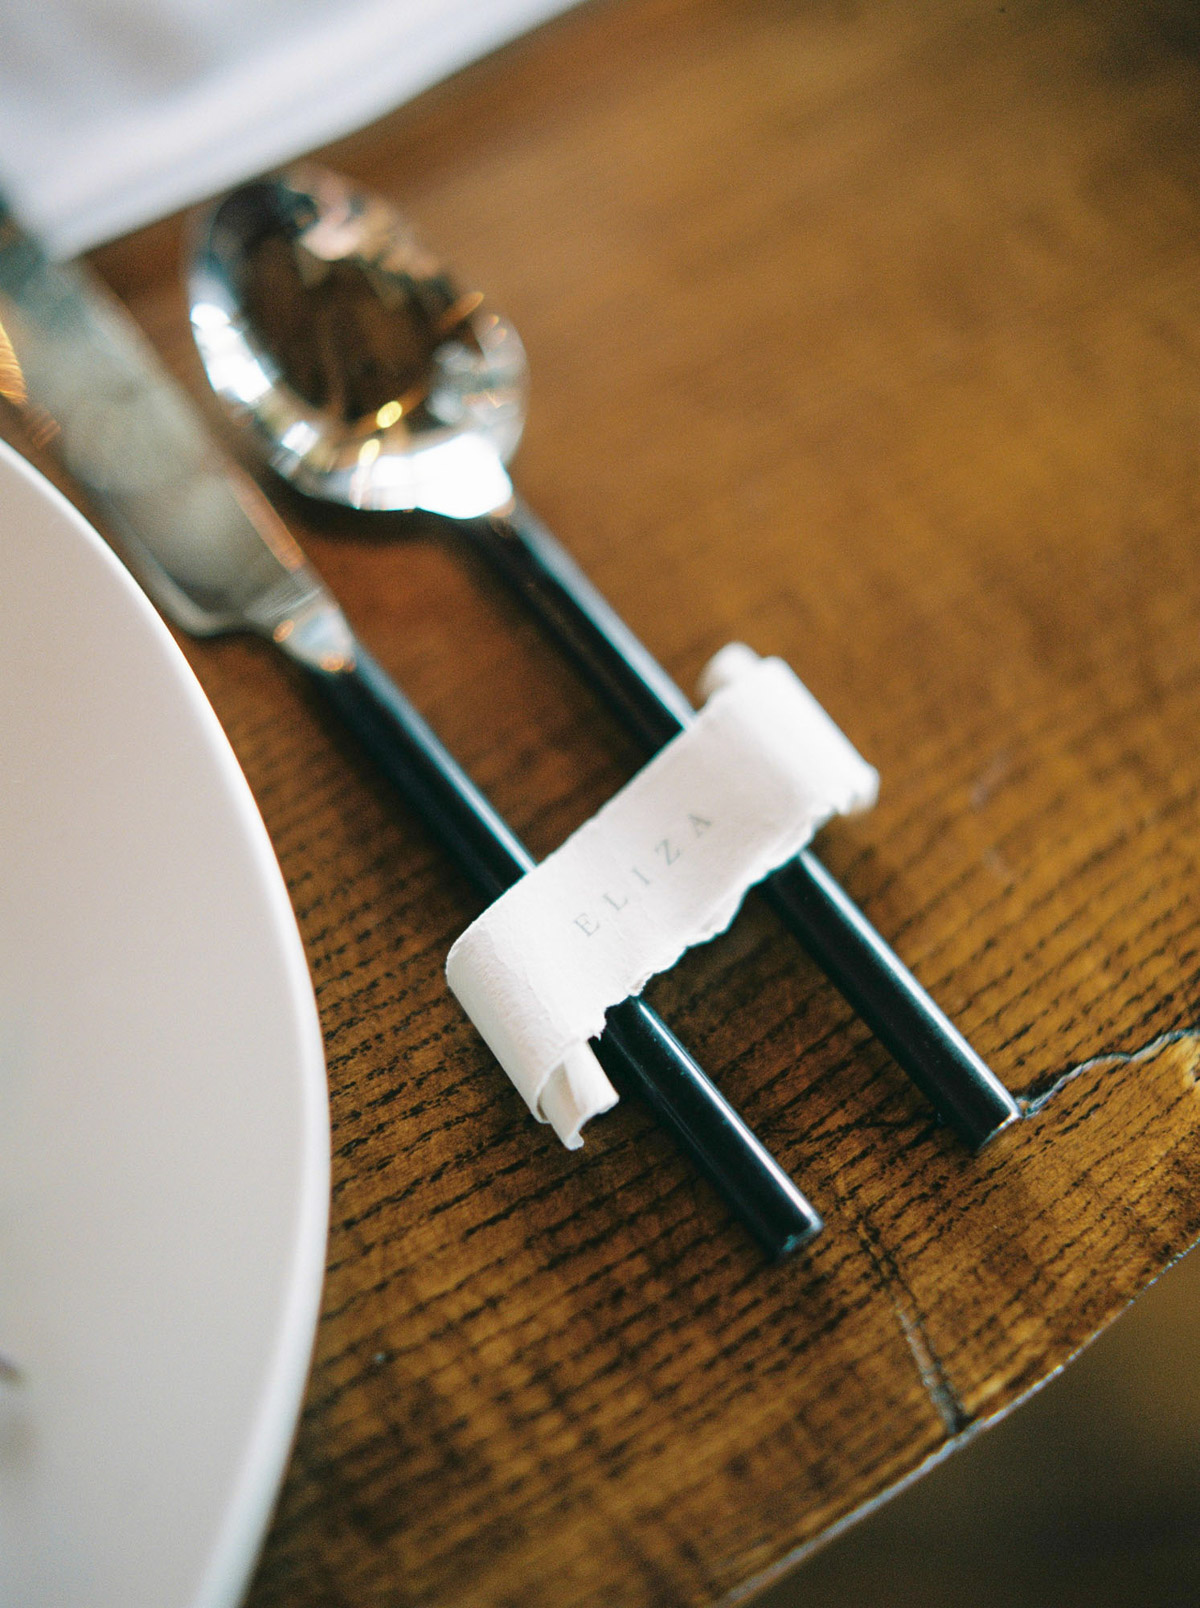 will-reid-photo-vineyard-bride-swish-list-kurtz-orchards-market-niagara-on-the-lake-wedding-editorial-29.jpg